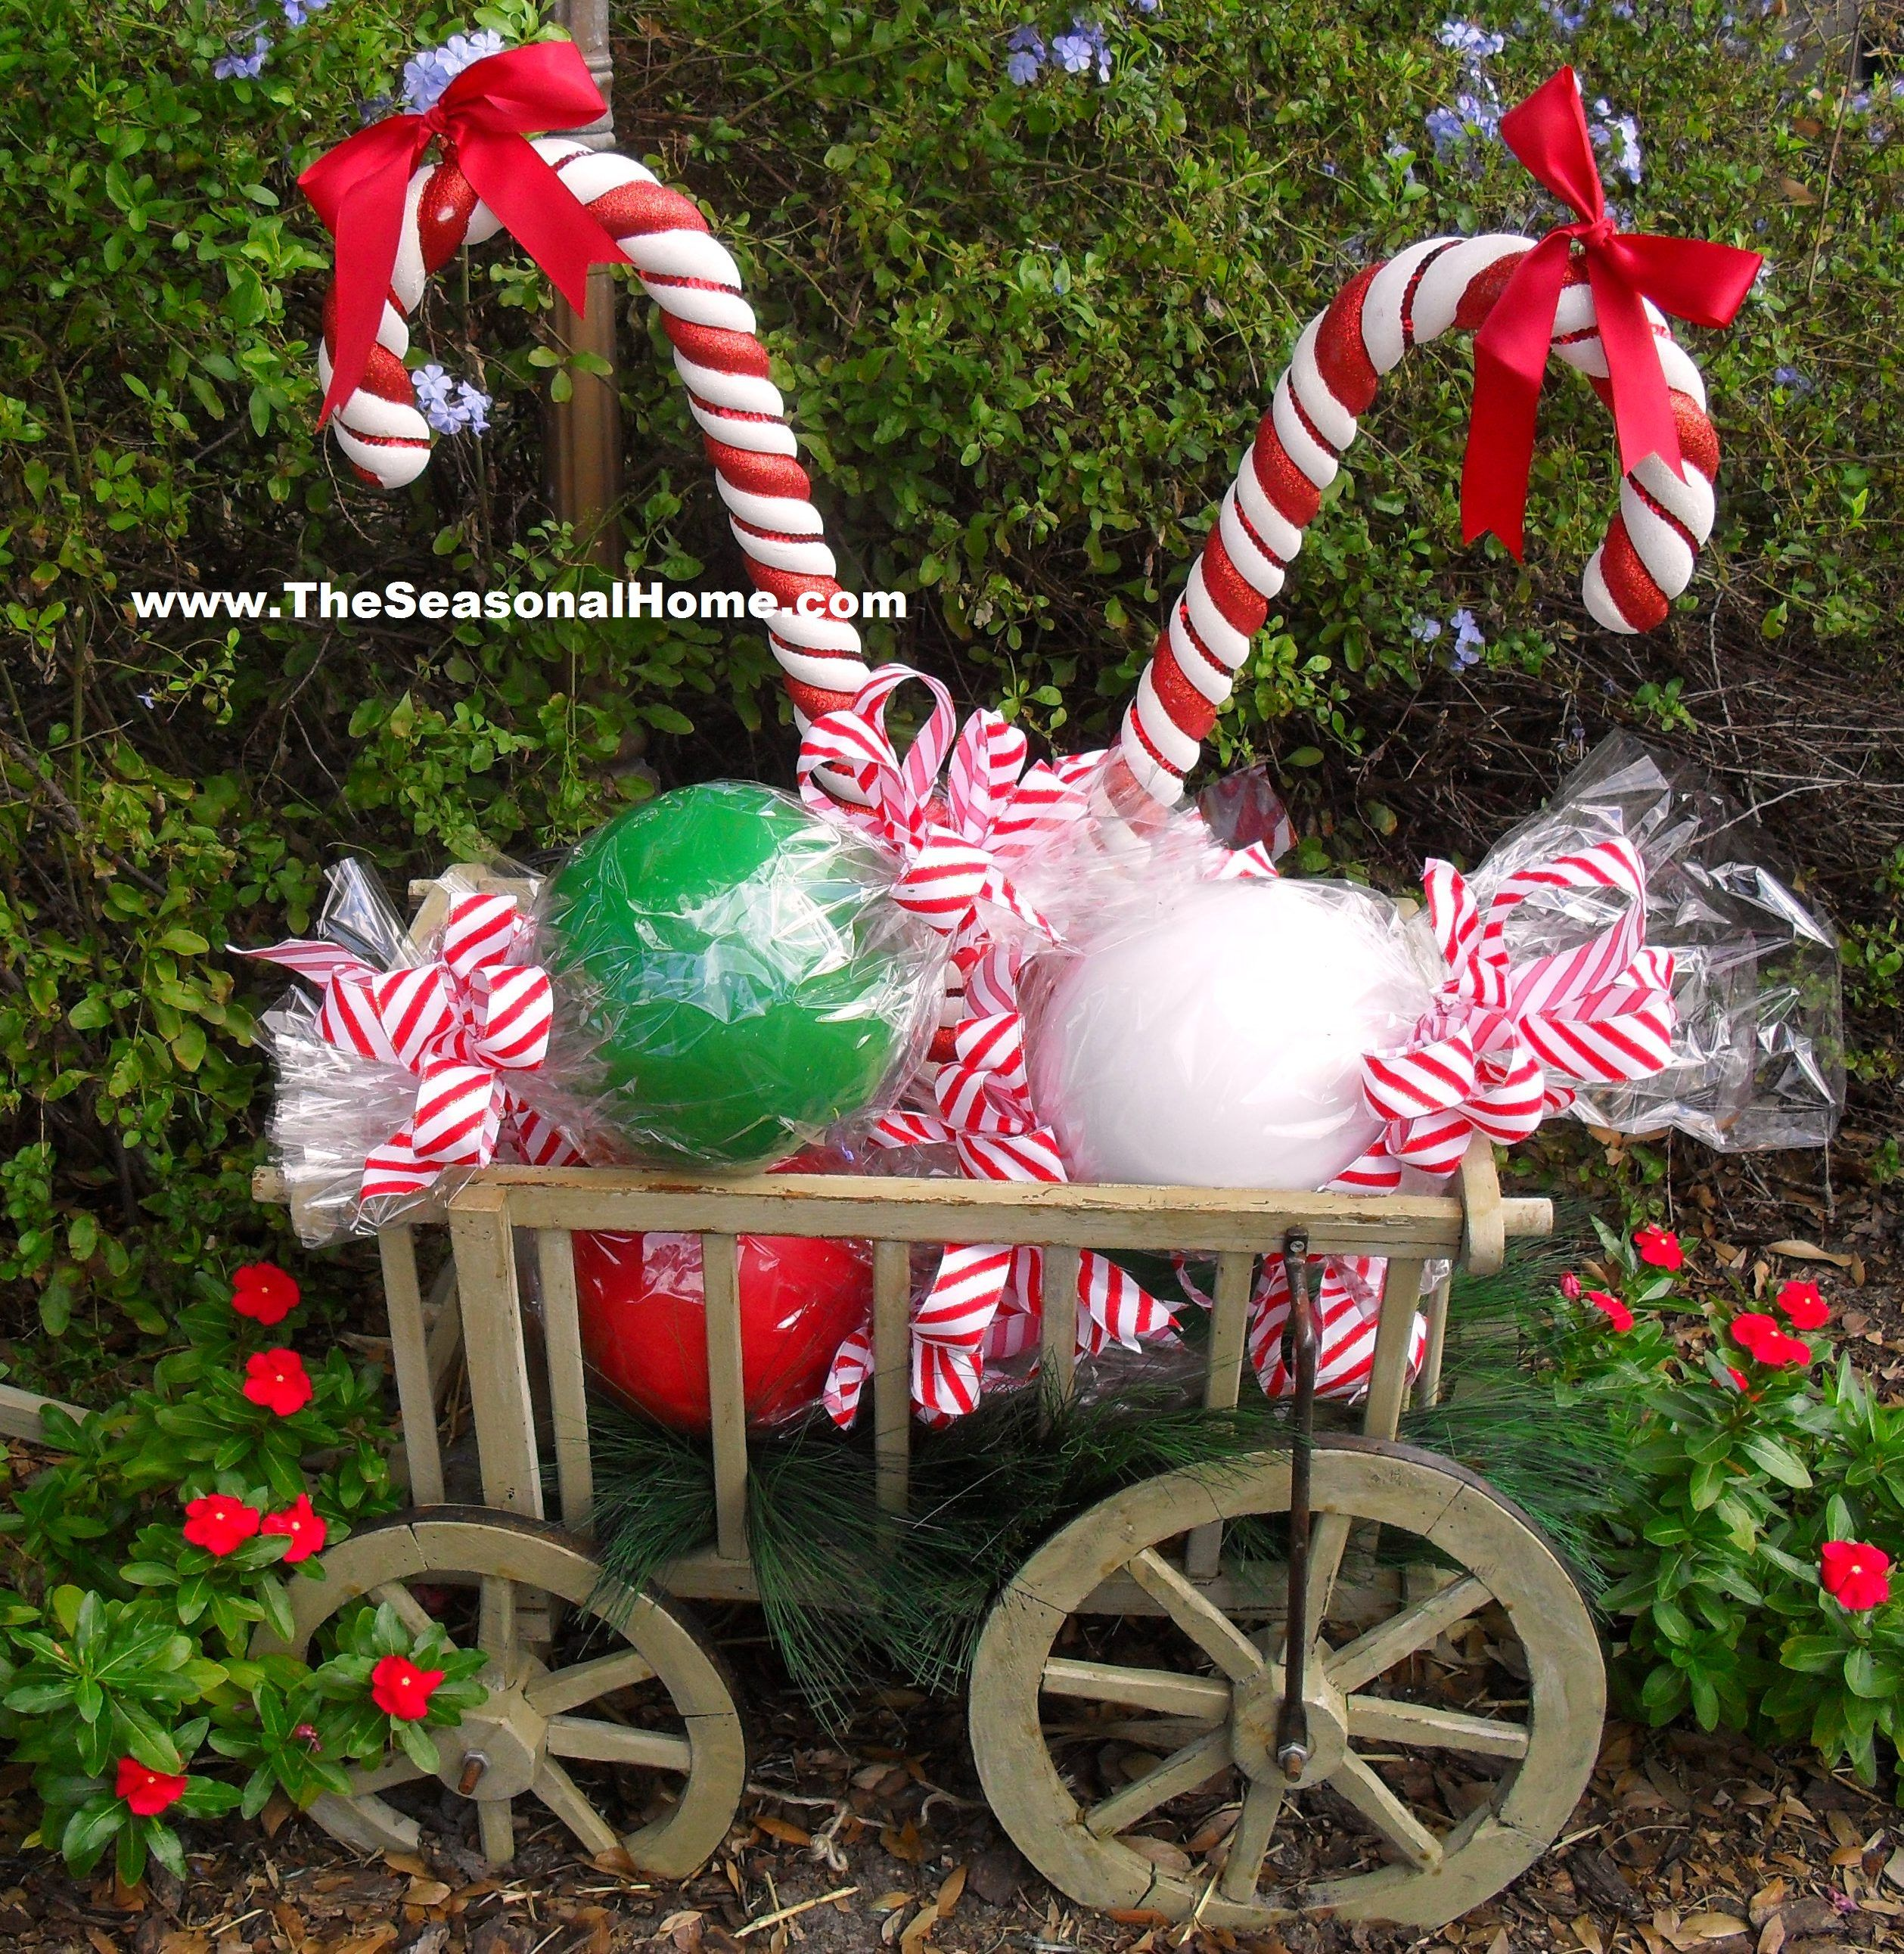 How To Diy Outdoor Candy On The Seasonal Home Blog